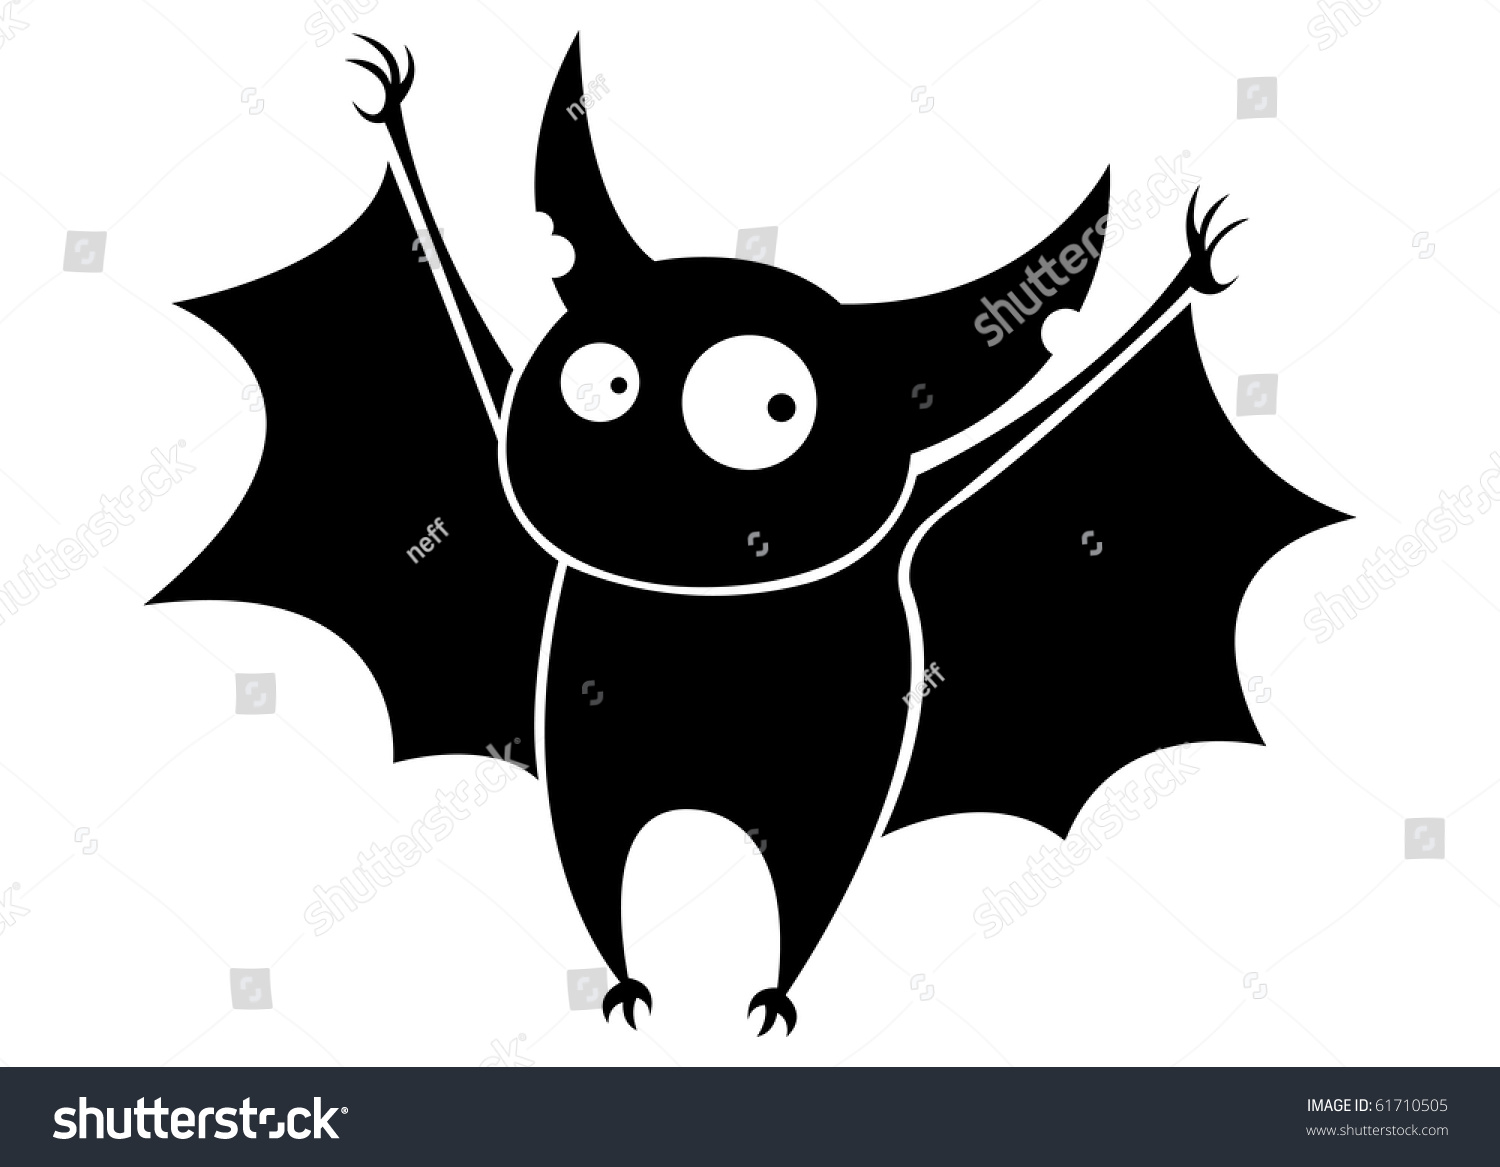 A Picture Of A Cartoon Bat small funny flying cartoon bat stock vector (royalty free